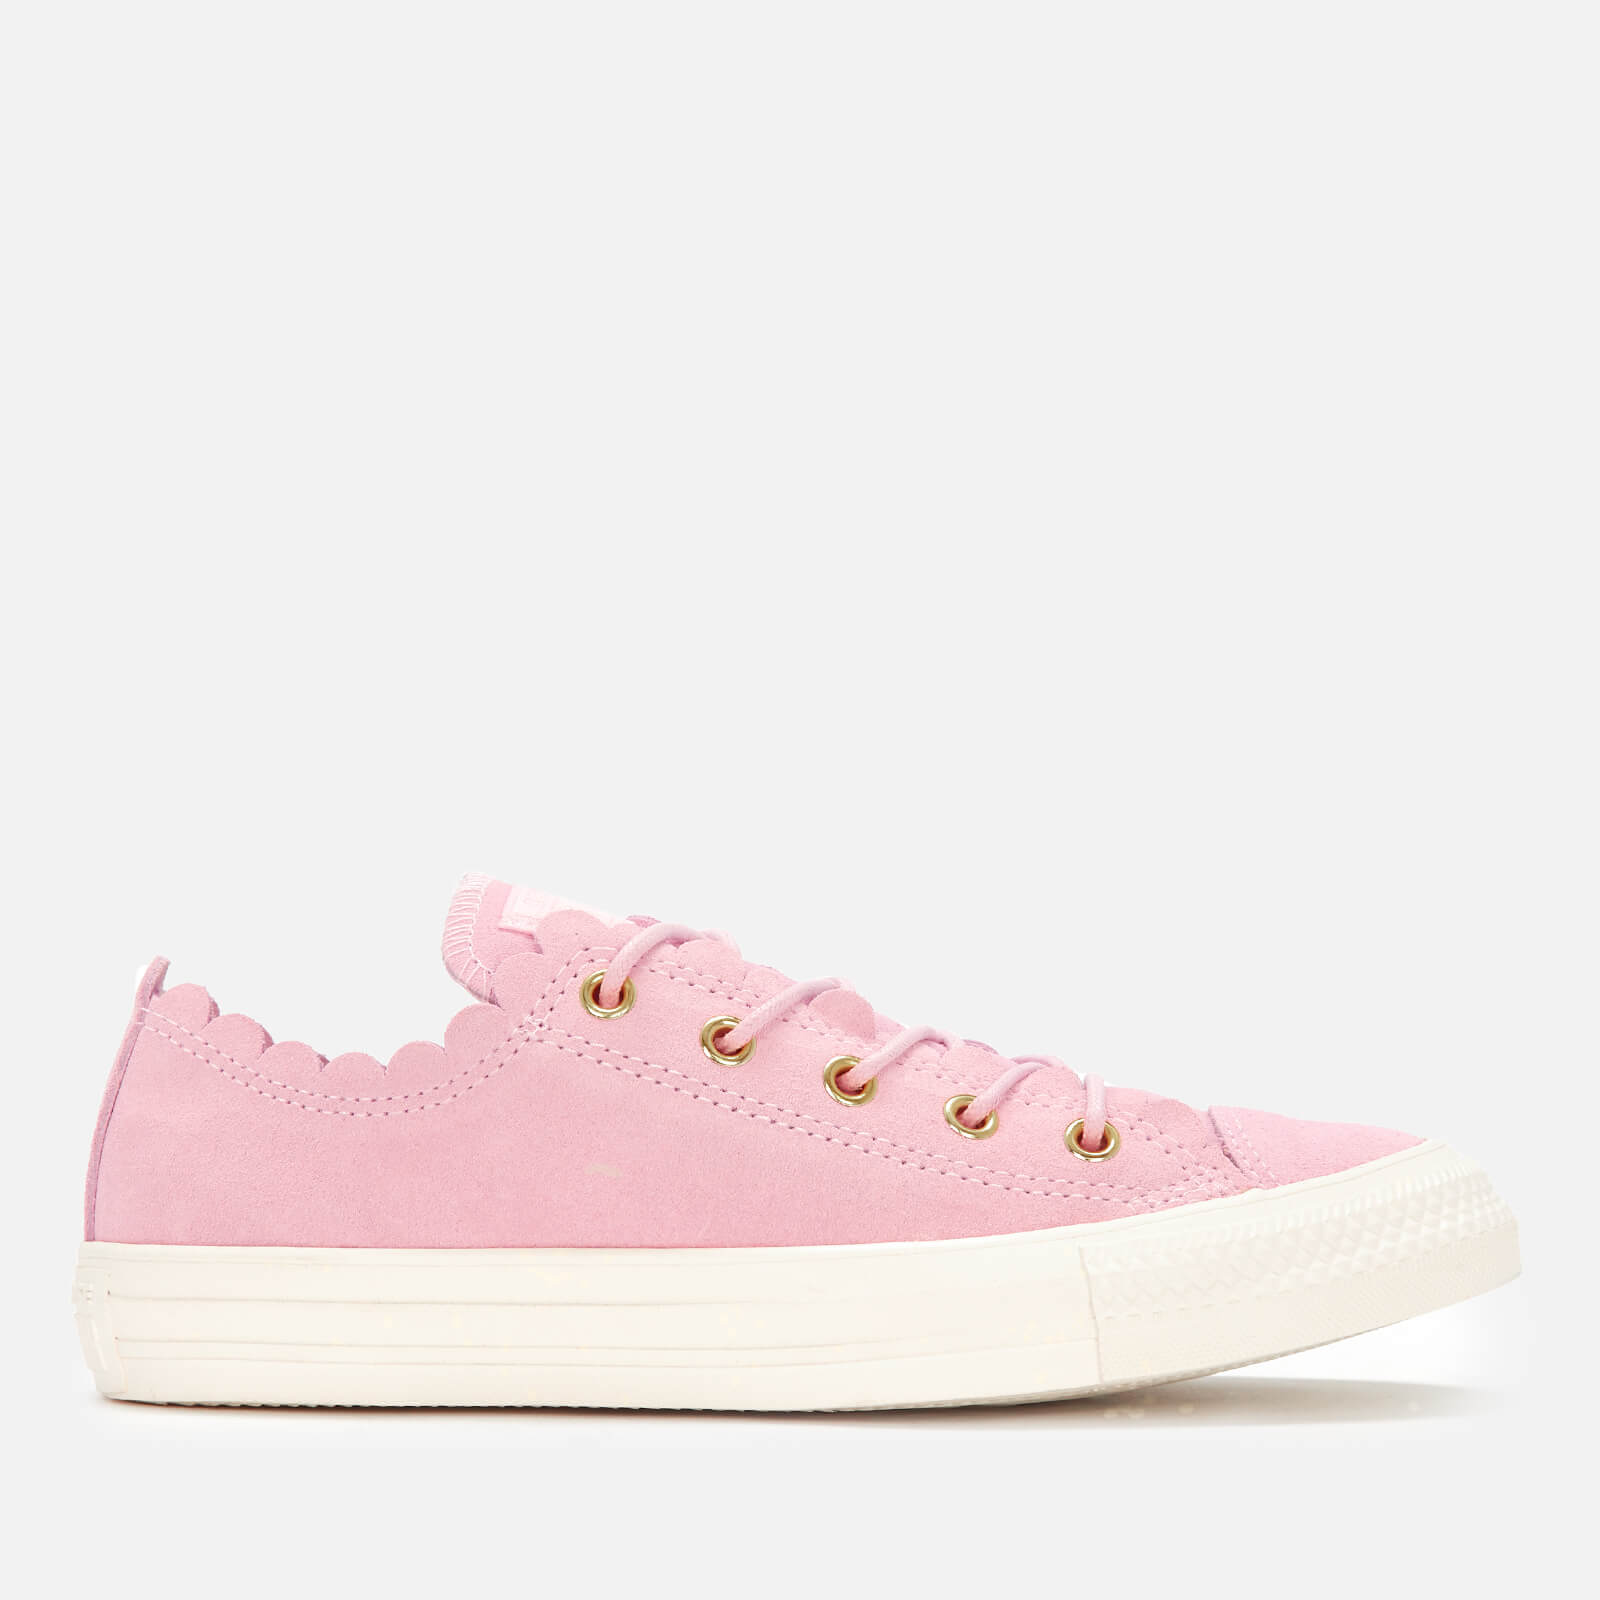 Converse Women's Chuck Taylor All Star Scalloped Edge Ox Trainers Pink FoamGoldEgret